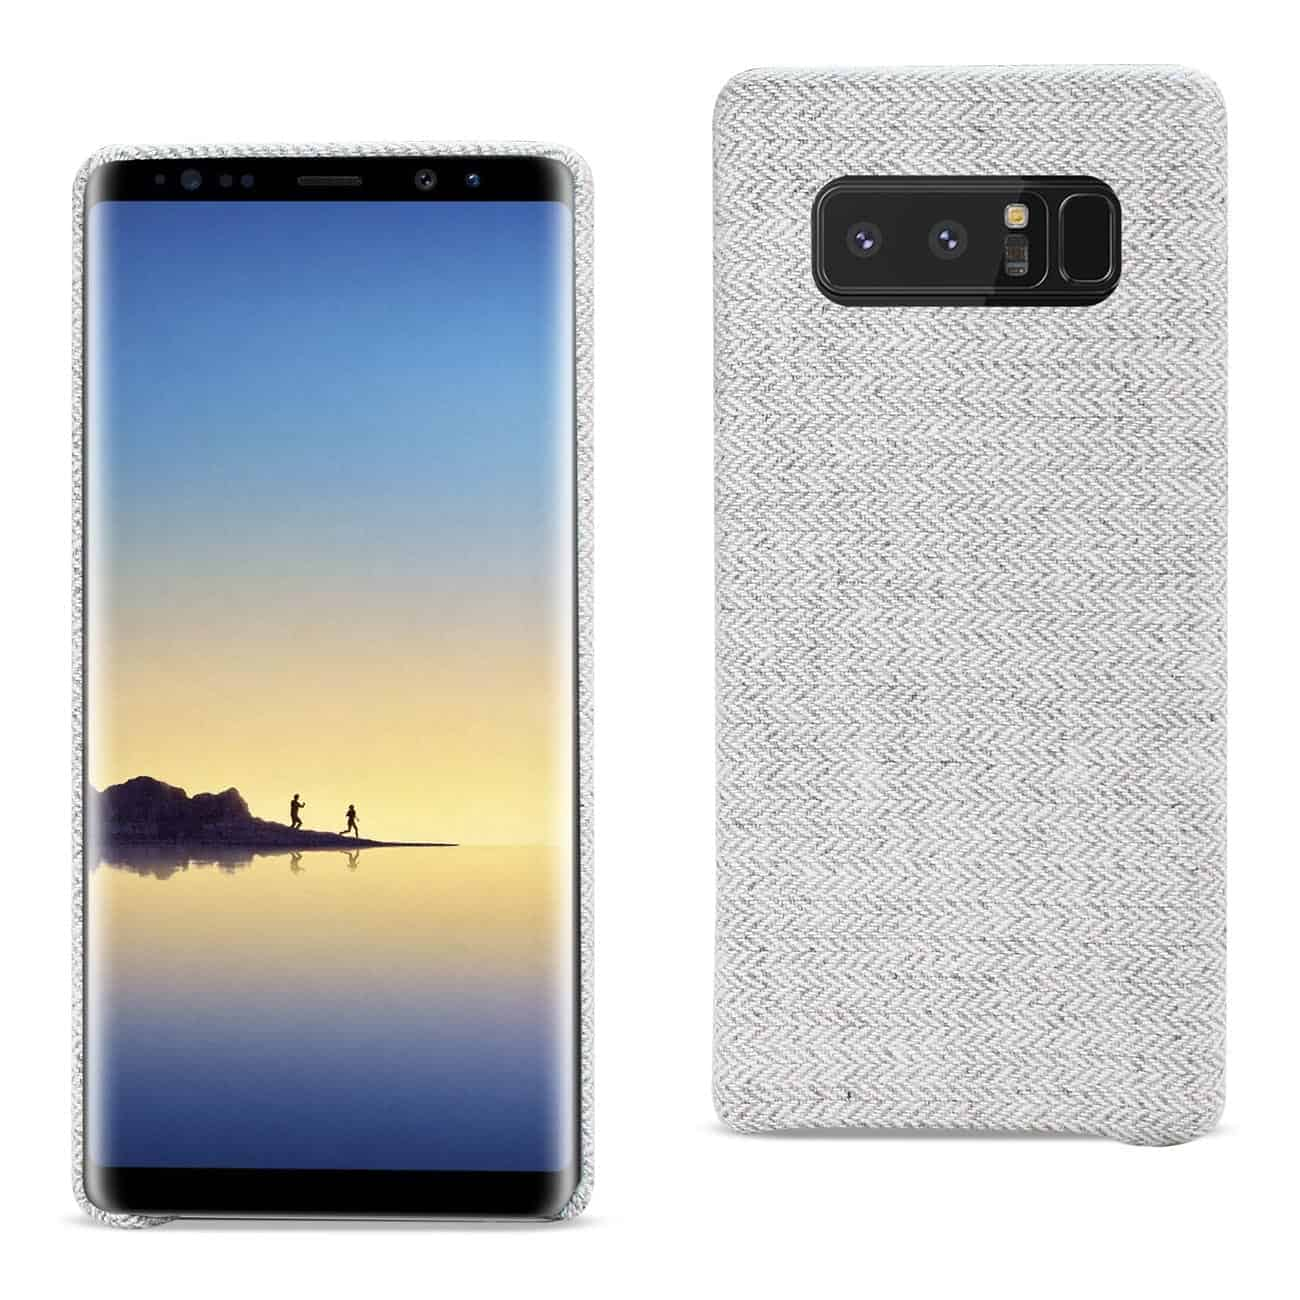 SAMSUNG GALAXY NOTE 8 HERRINGBONE FABRIC IN LIGHT GRAY